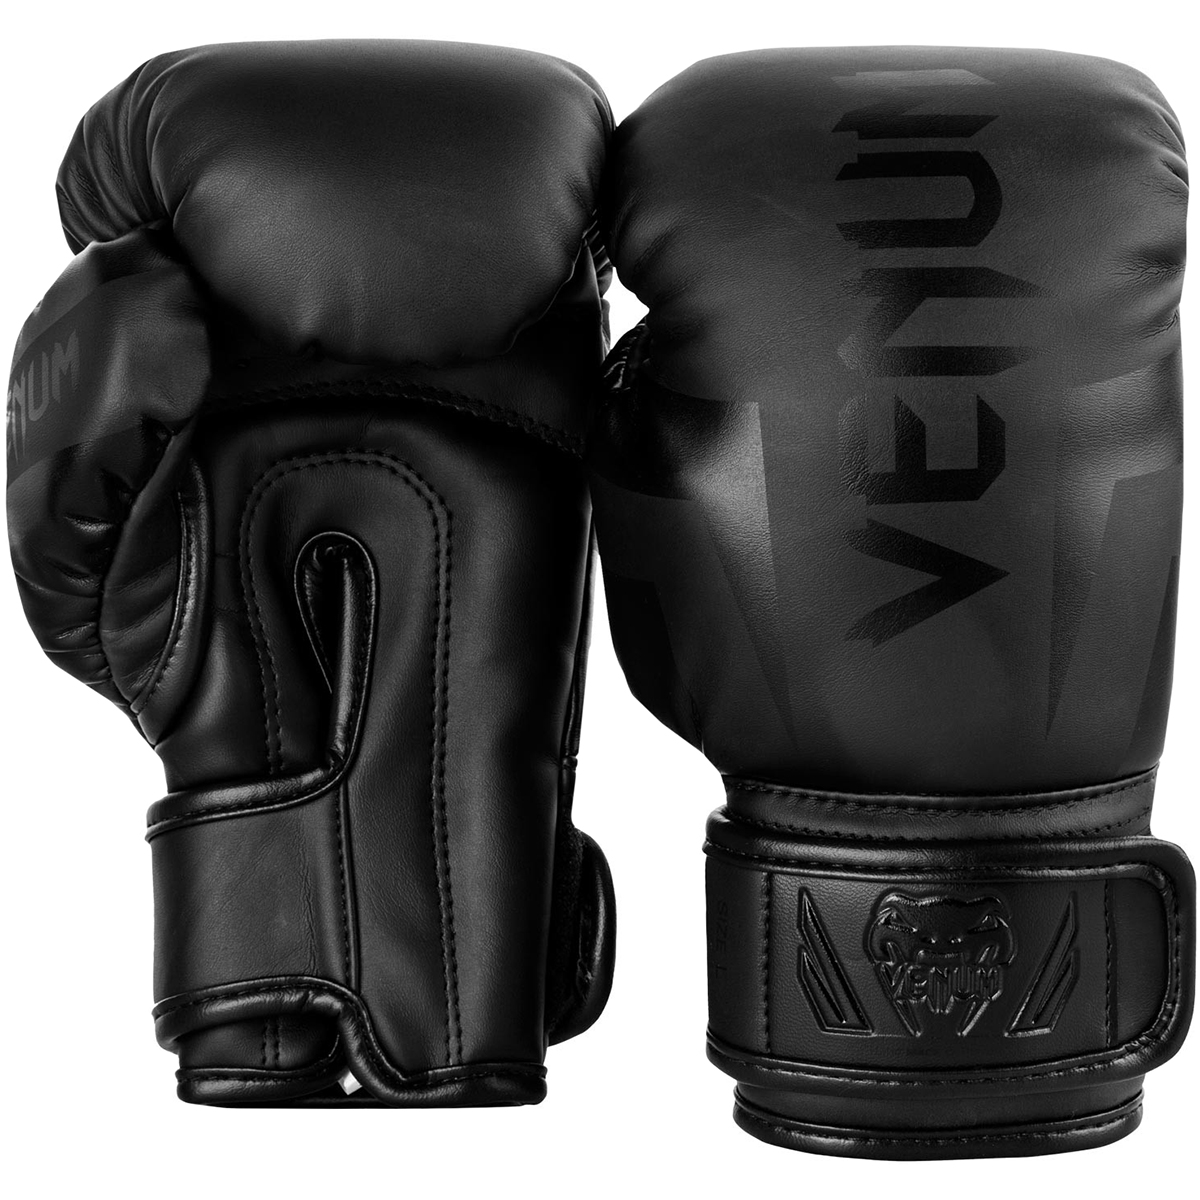 Venum Elite Boxing Gloves Black Gold